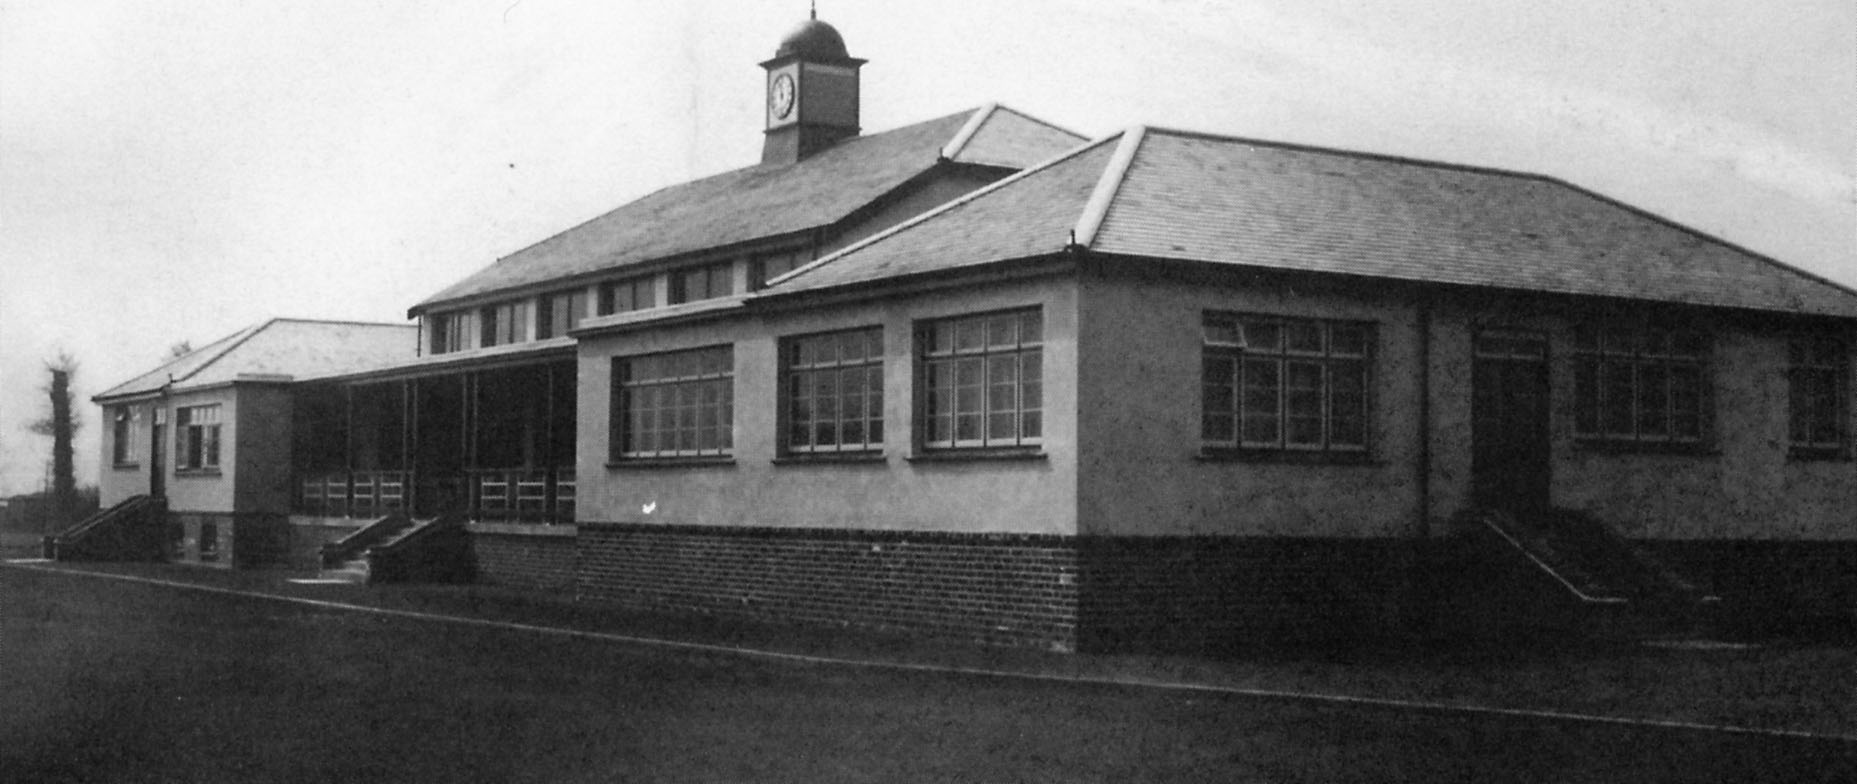 GWR S 119 Clubs Sports Club and Pavilion opening at Shrivenham Road May 1935(0002)